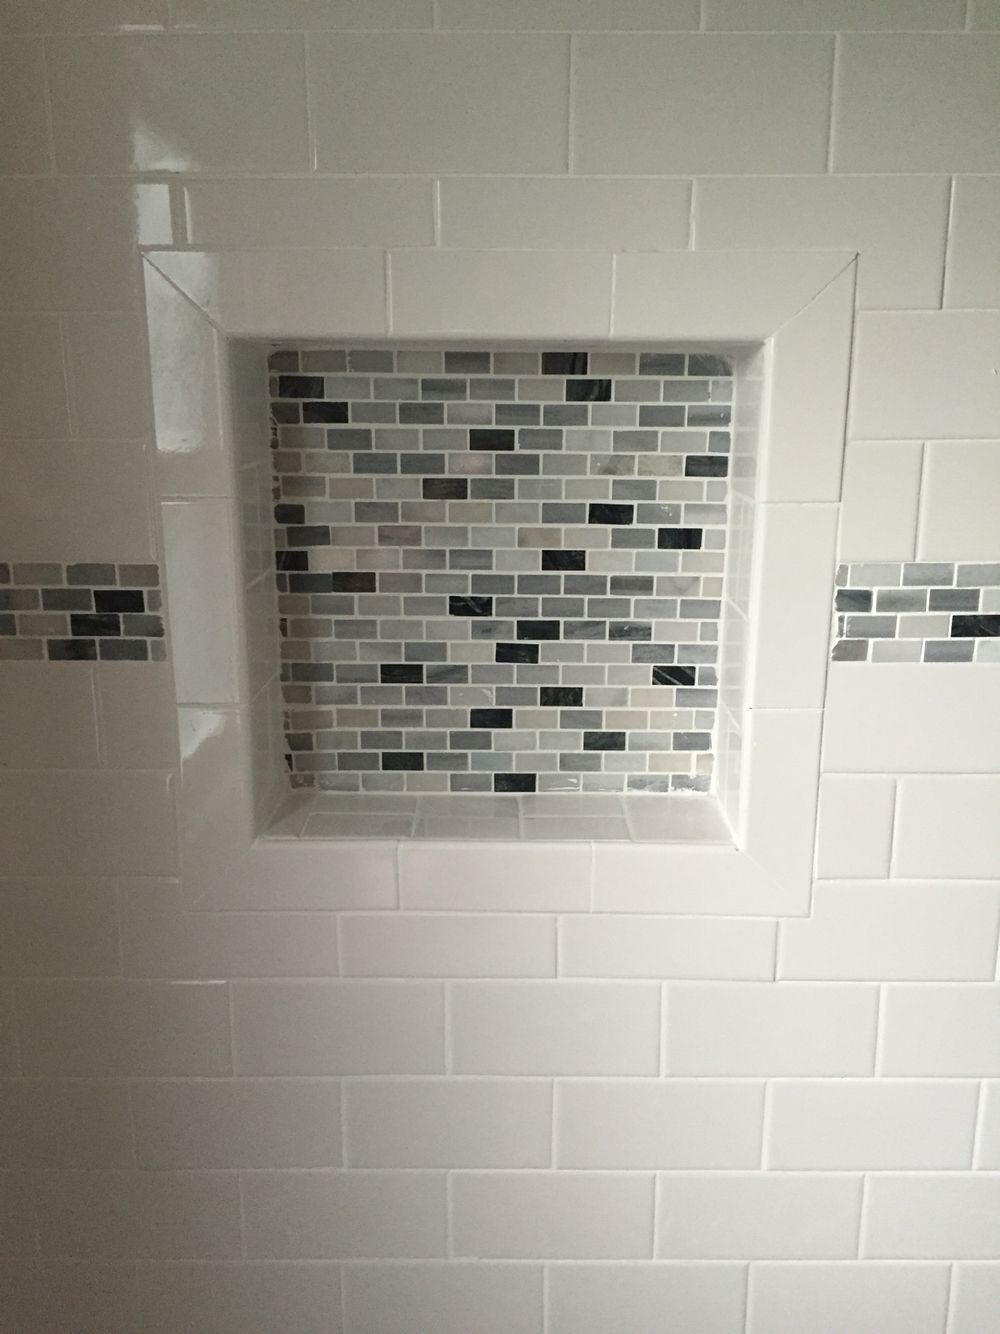 Us ceramic tile color collection bright snow white subway tile us ceramic tile color collection bright snow white subway tile with durock 16 in x 16 in x 4 in shower niche tiled with daltile snow illusion 2 58 dailygadgetfo Images